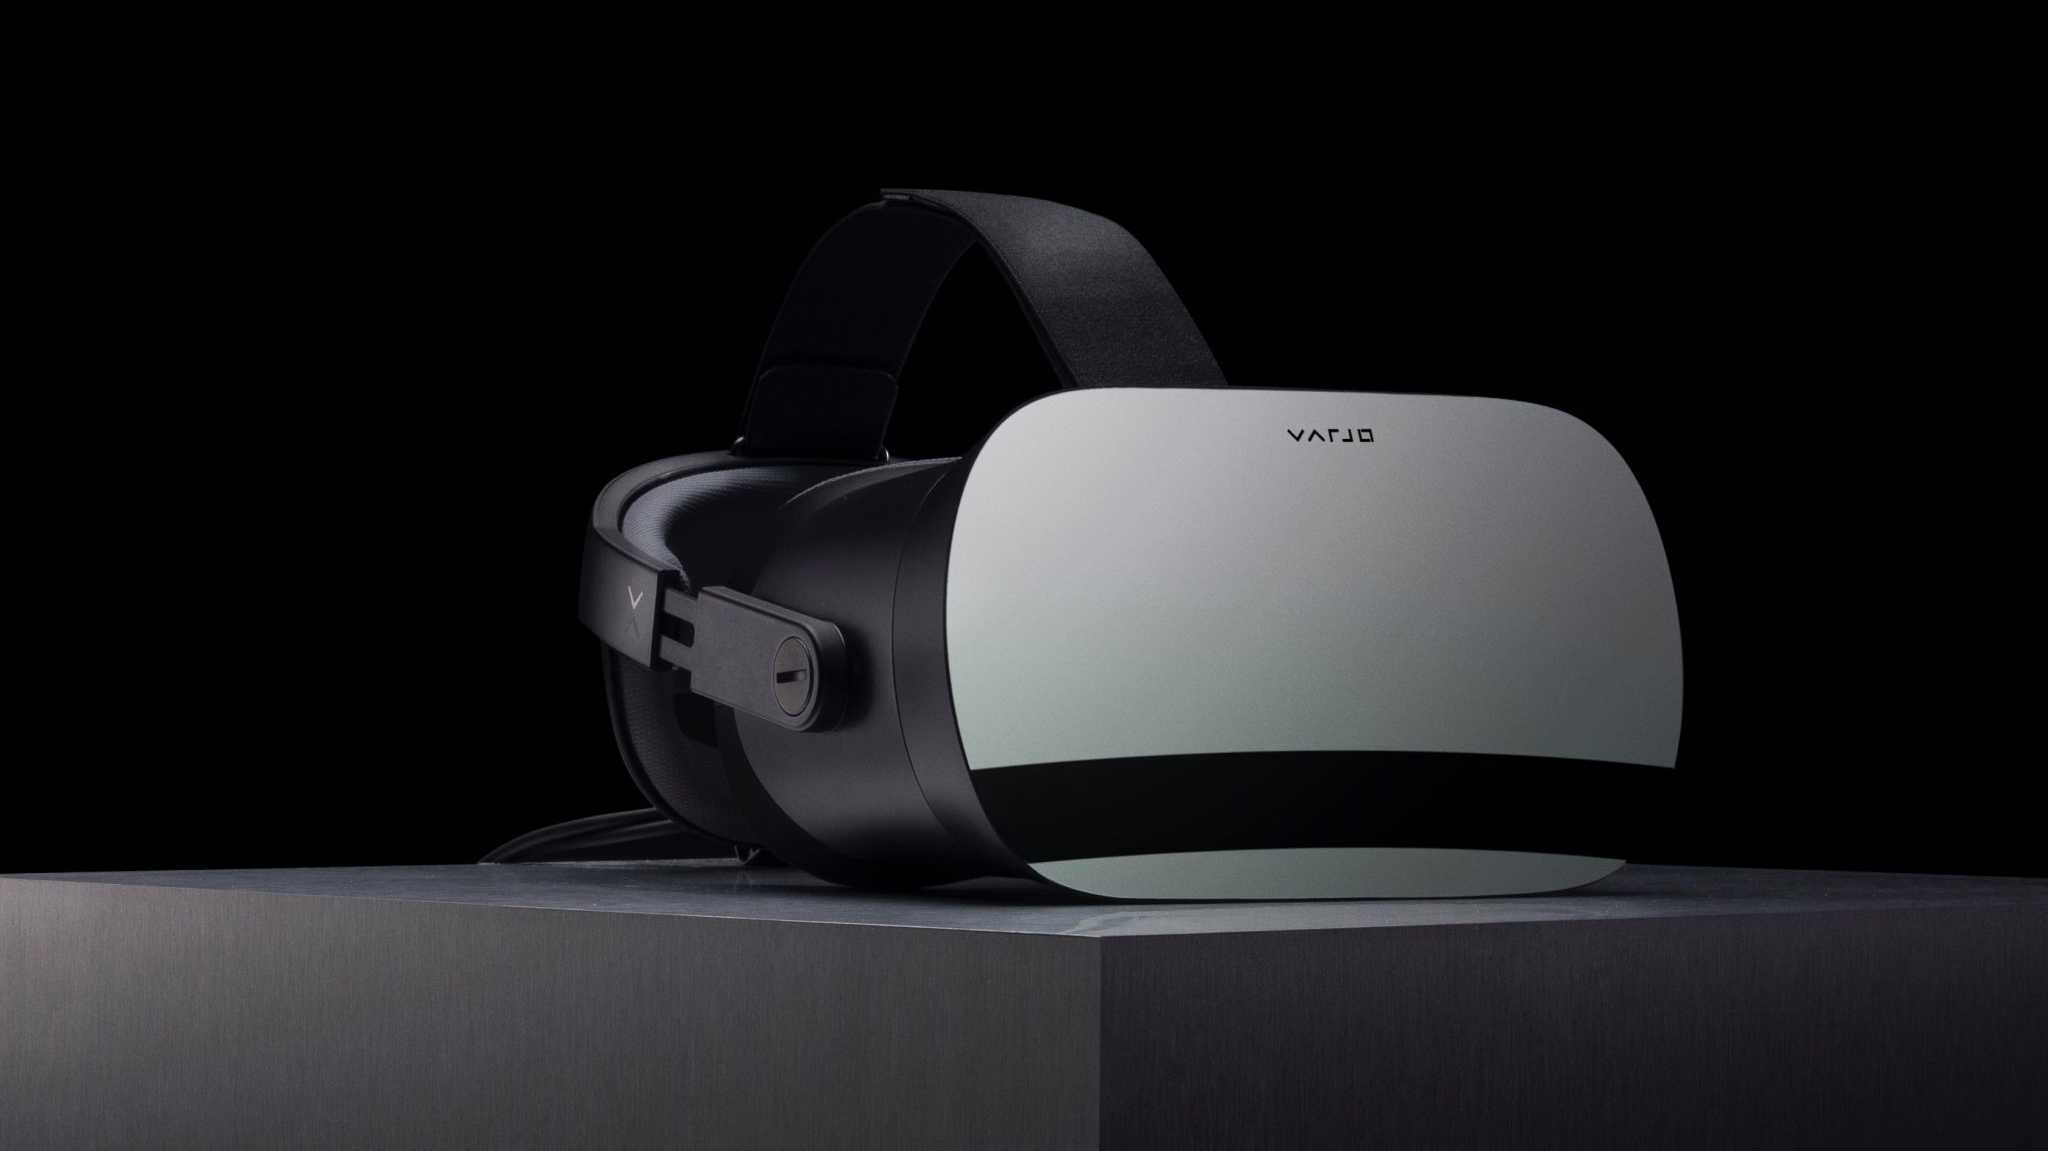 Varjo VR-1: Superscharfes VR-Headset mit Tunnelblick